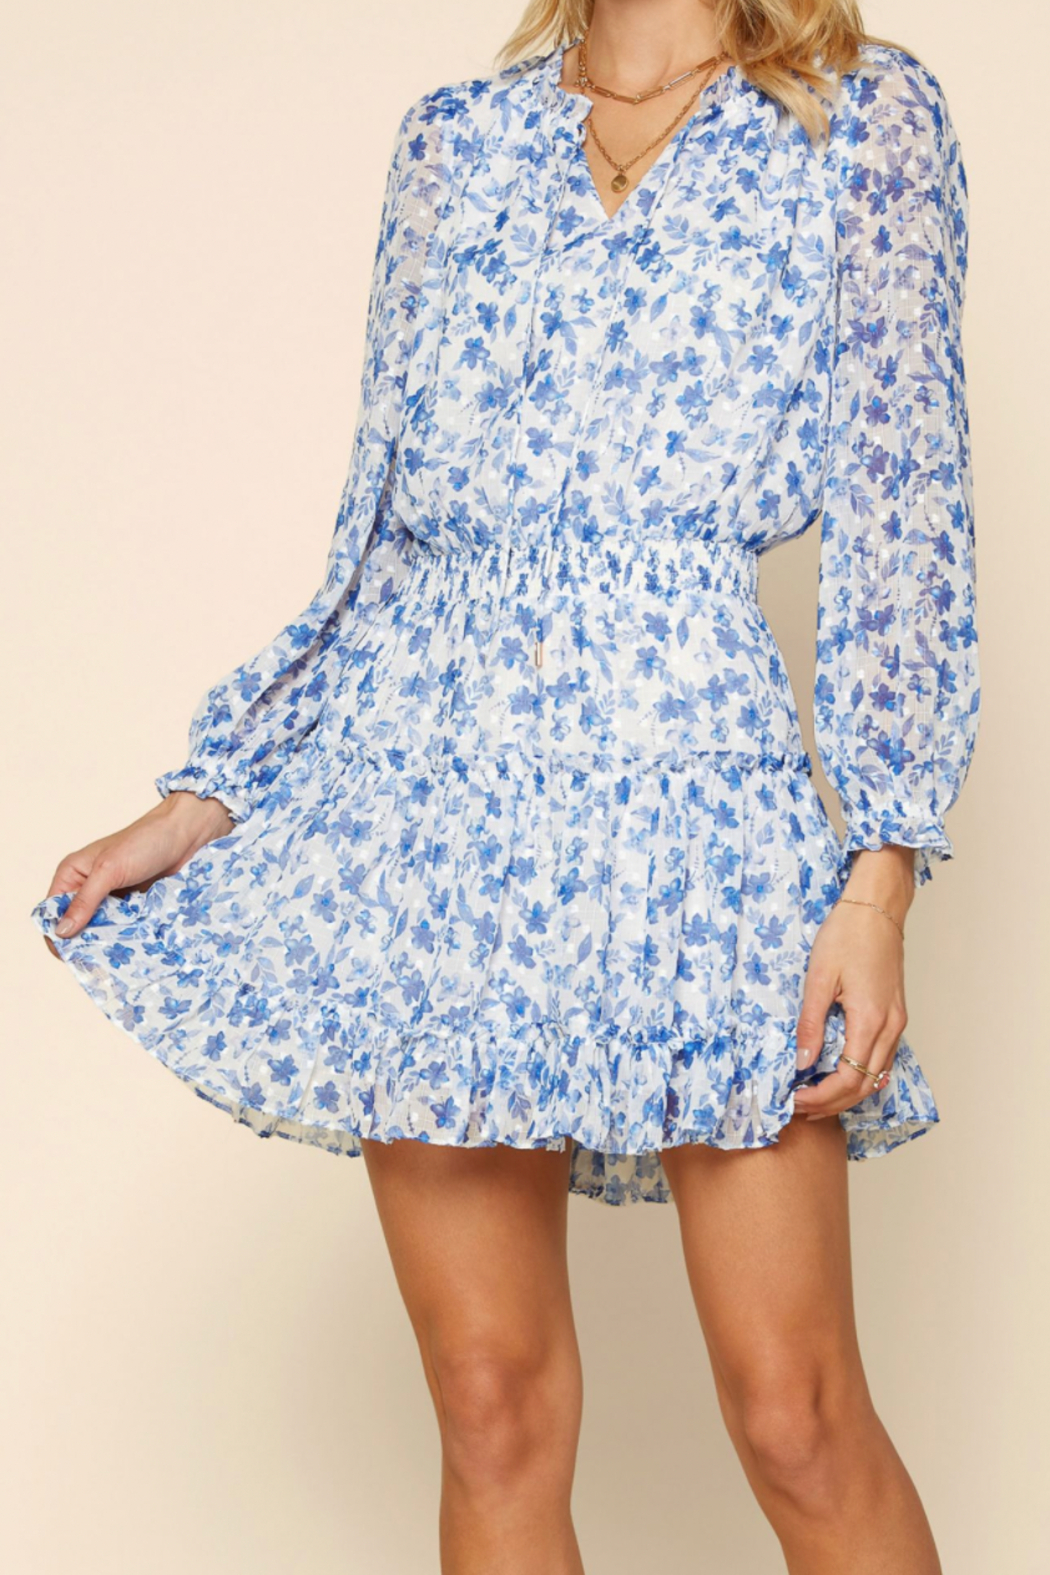 Skies Are Blue RUFFLED MINI DRESS - Front Full Image